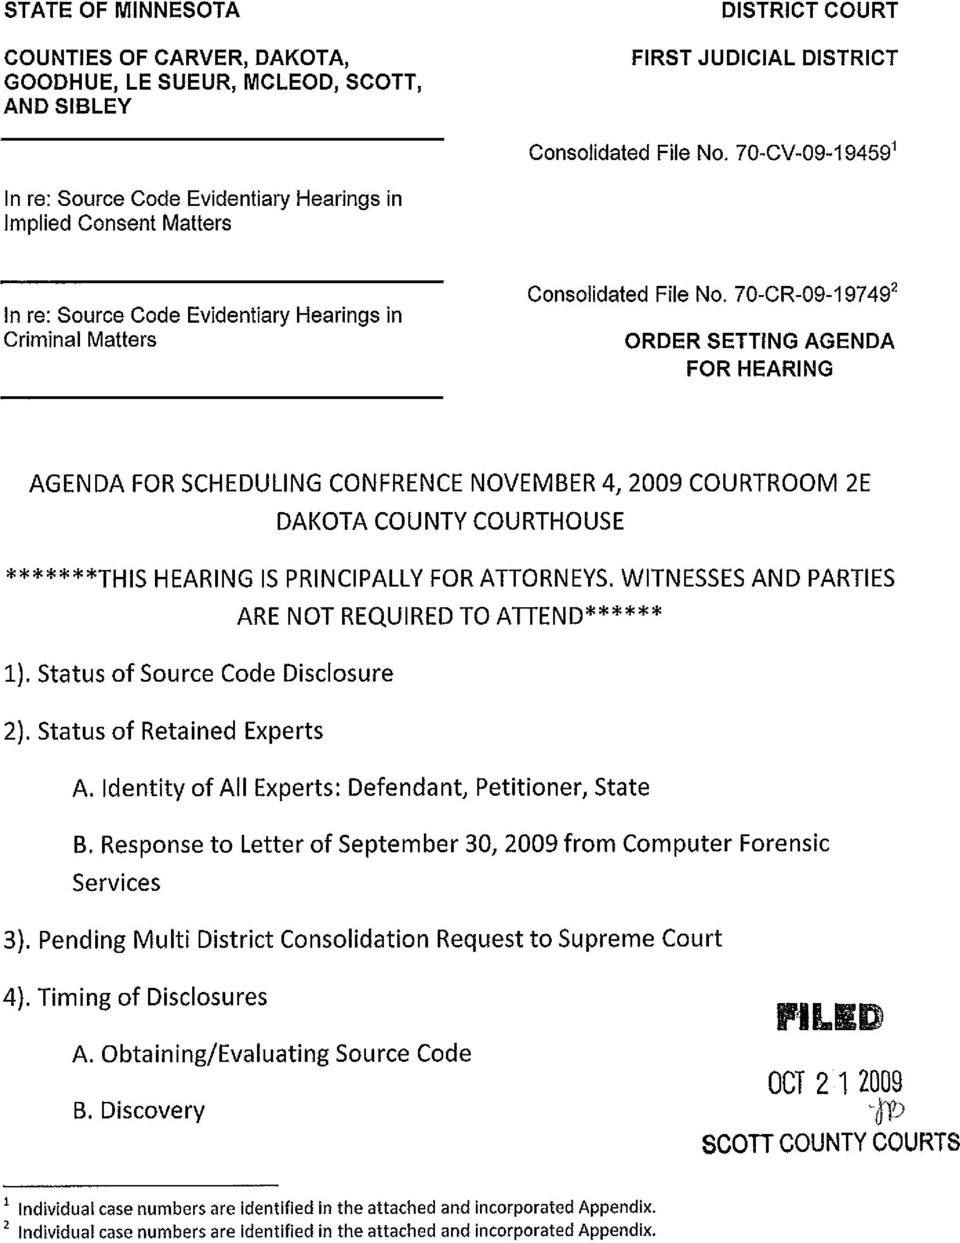 70-CR-09-19749 2 ORDER SETTING AGENDA FOR HEARING AGENDA FOR SCHEDULING CONFRENCE NOVEMBER 4,2009 COURTROOM 2E DAKOTA COUNTY COURTHOUSE *******THIS HEARING IS PRINCIPALLY FOR ATTORNEYS.